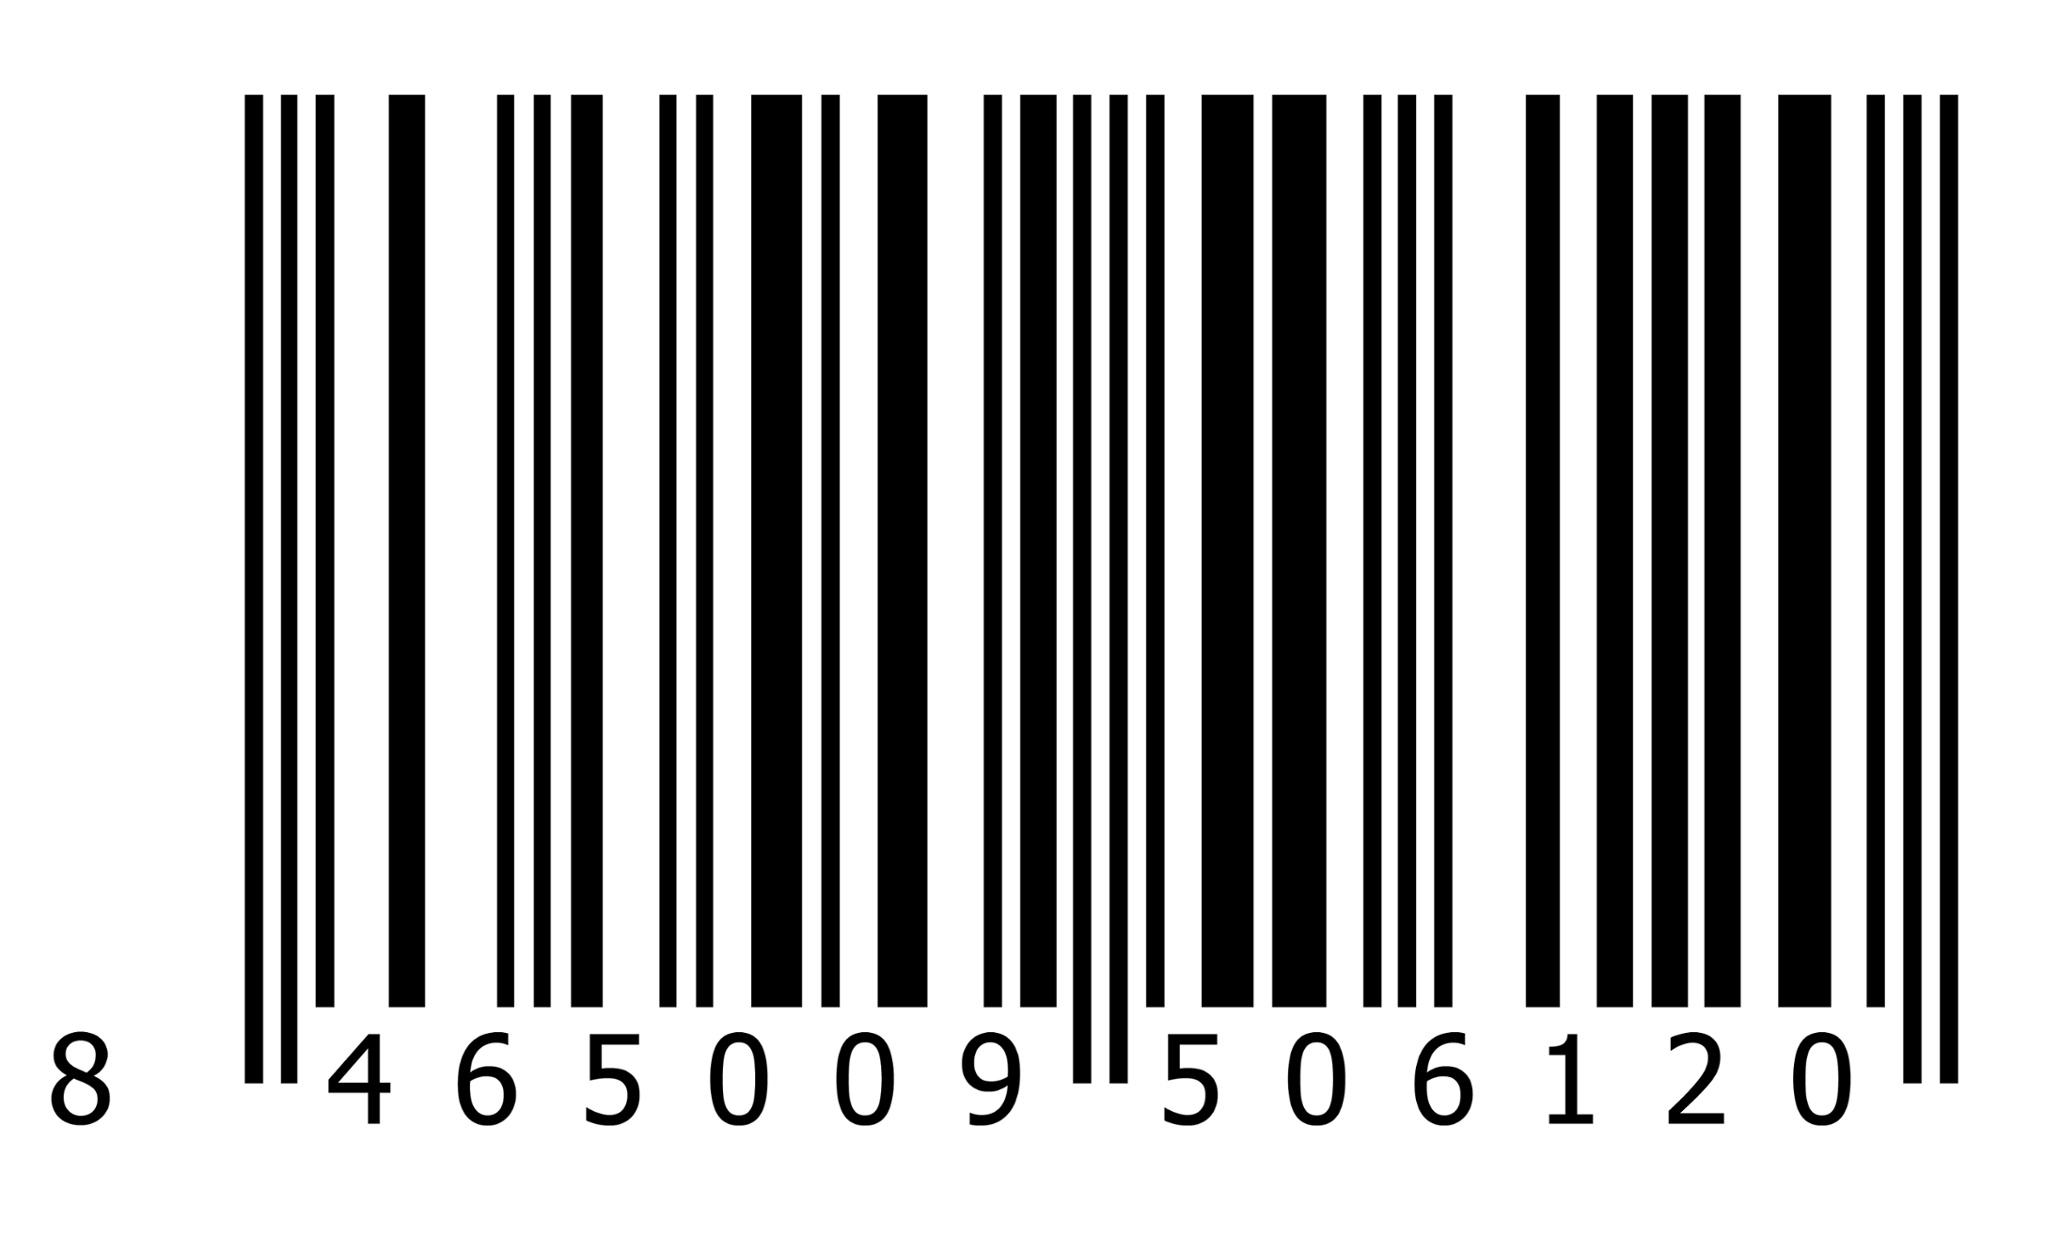 the gallery for gt fashion magazine barcode with price